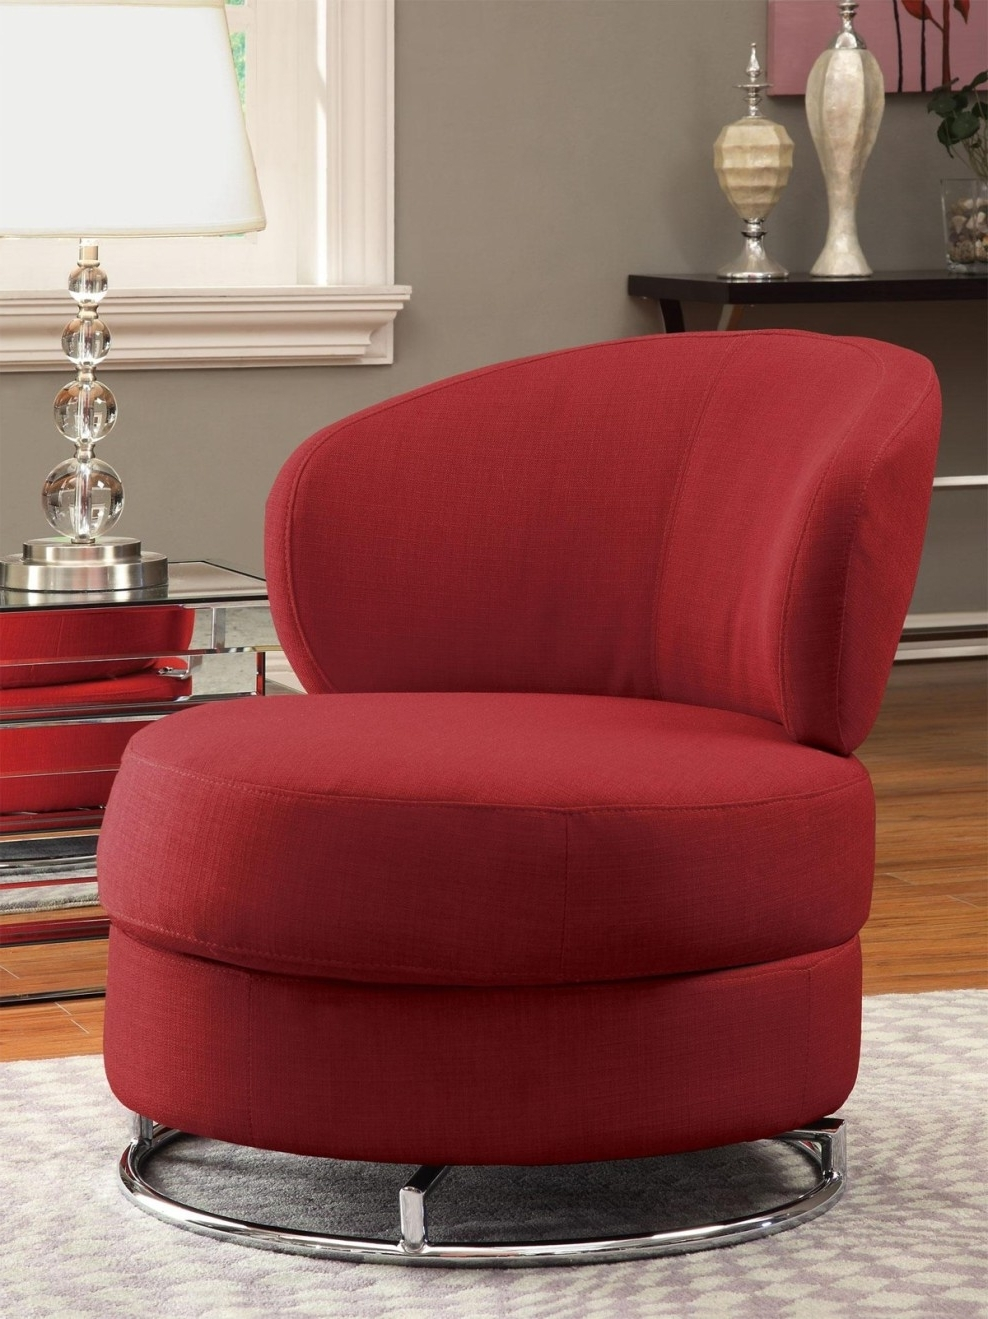 Sofa : Excellent Round Sofa Chair Living Room Furniture Harveys Inside Popular Round Swivel Sofa Chairs (View 10 of 15)